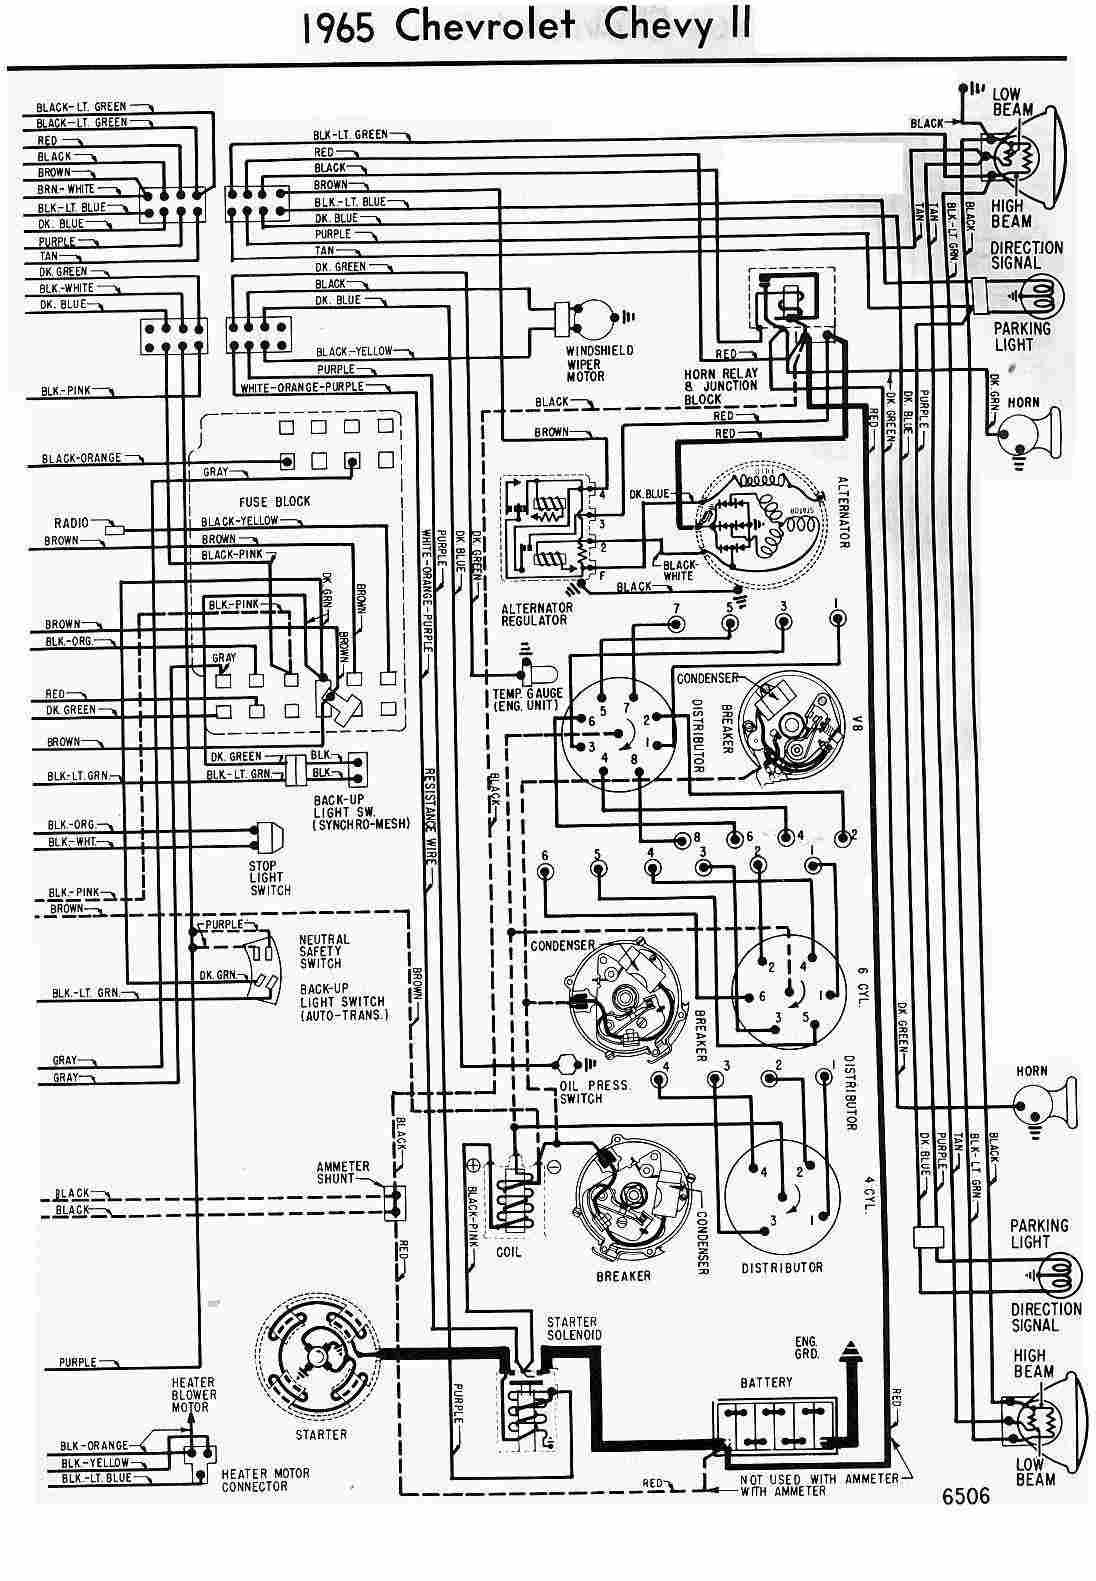 75 chevy caprice wiring diagram schematic wiring diagram library chevy hhr wiring-diagram 1976 corvette dash wiring diagram schematic simple wiring diagrams 75 chevy caprice